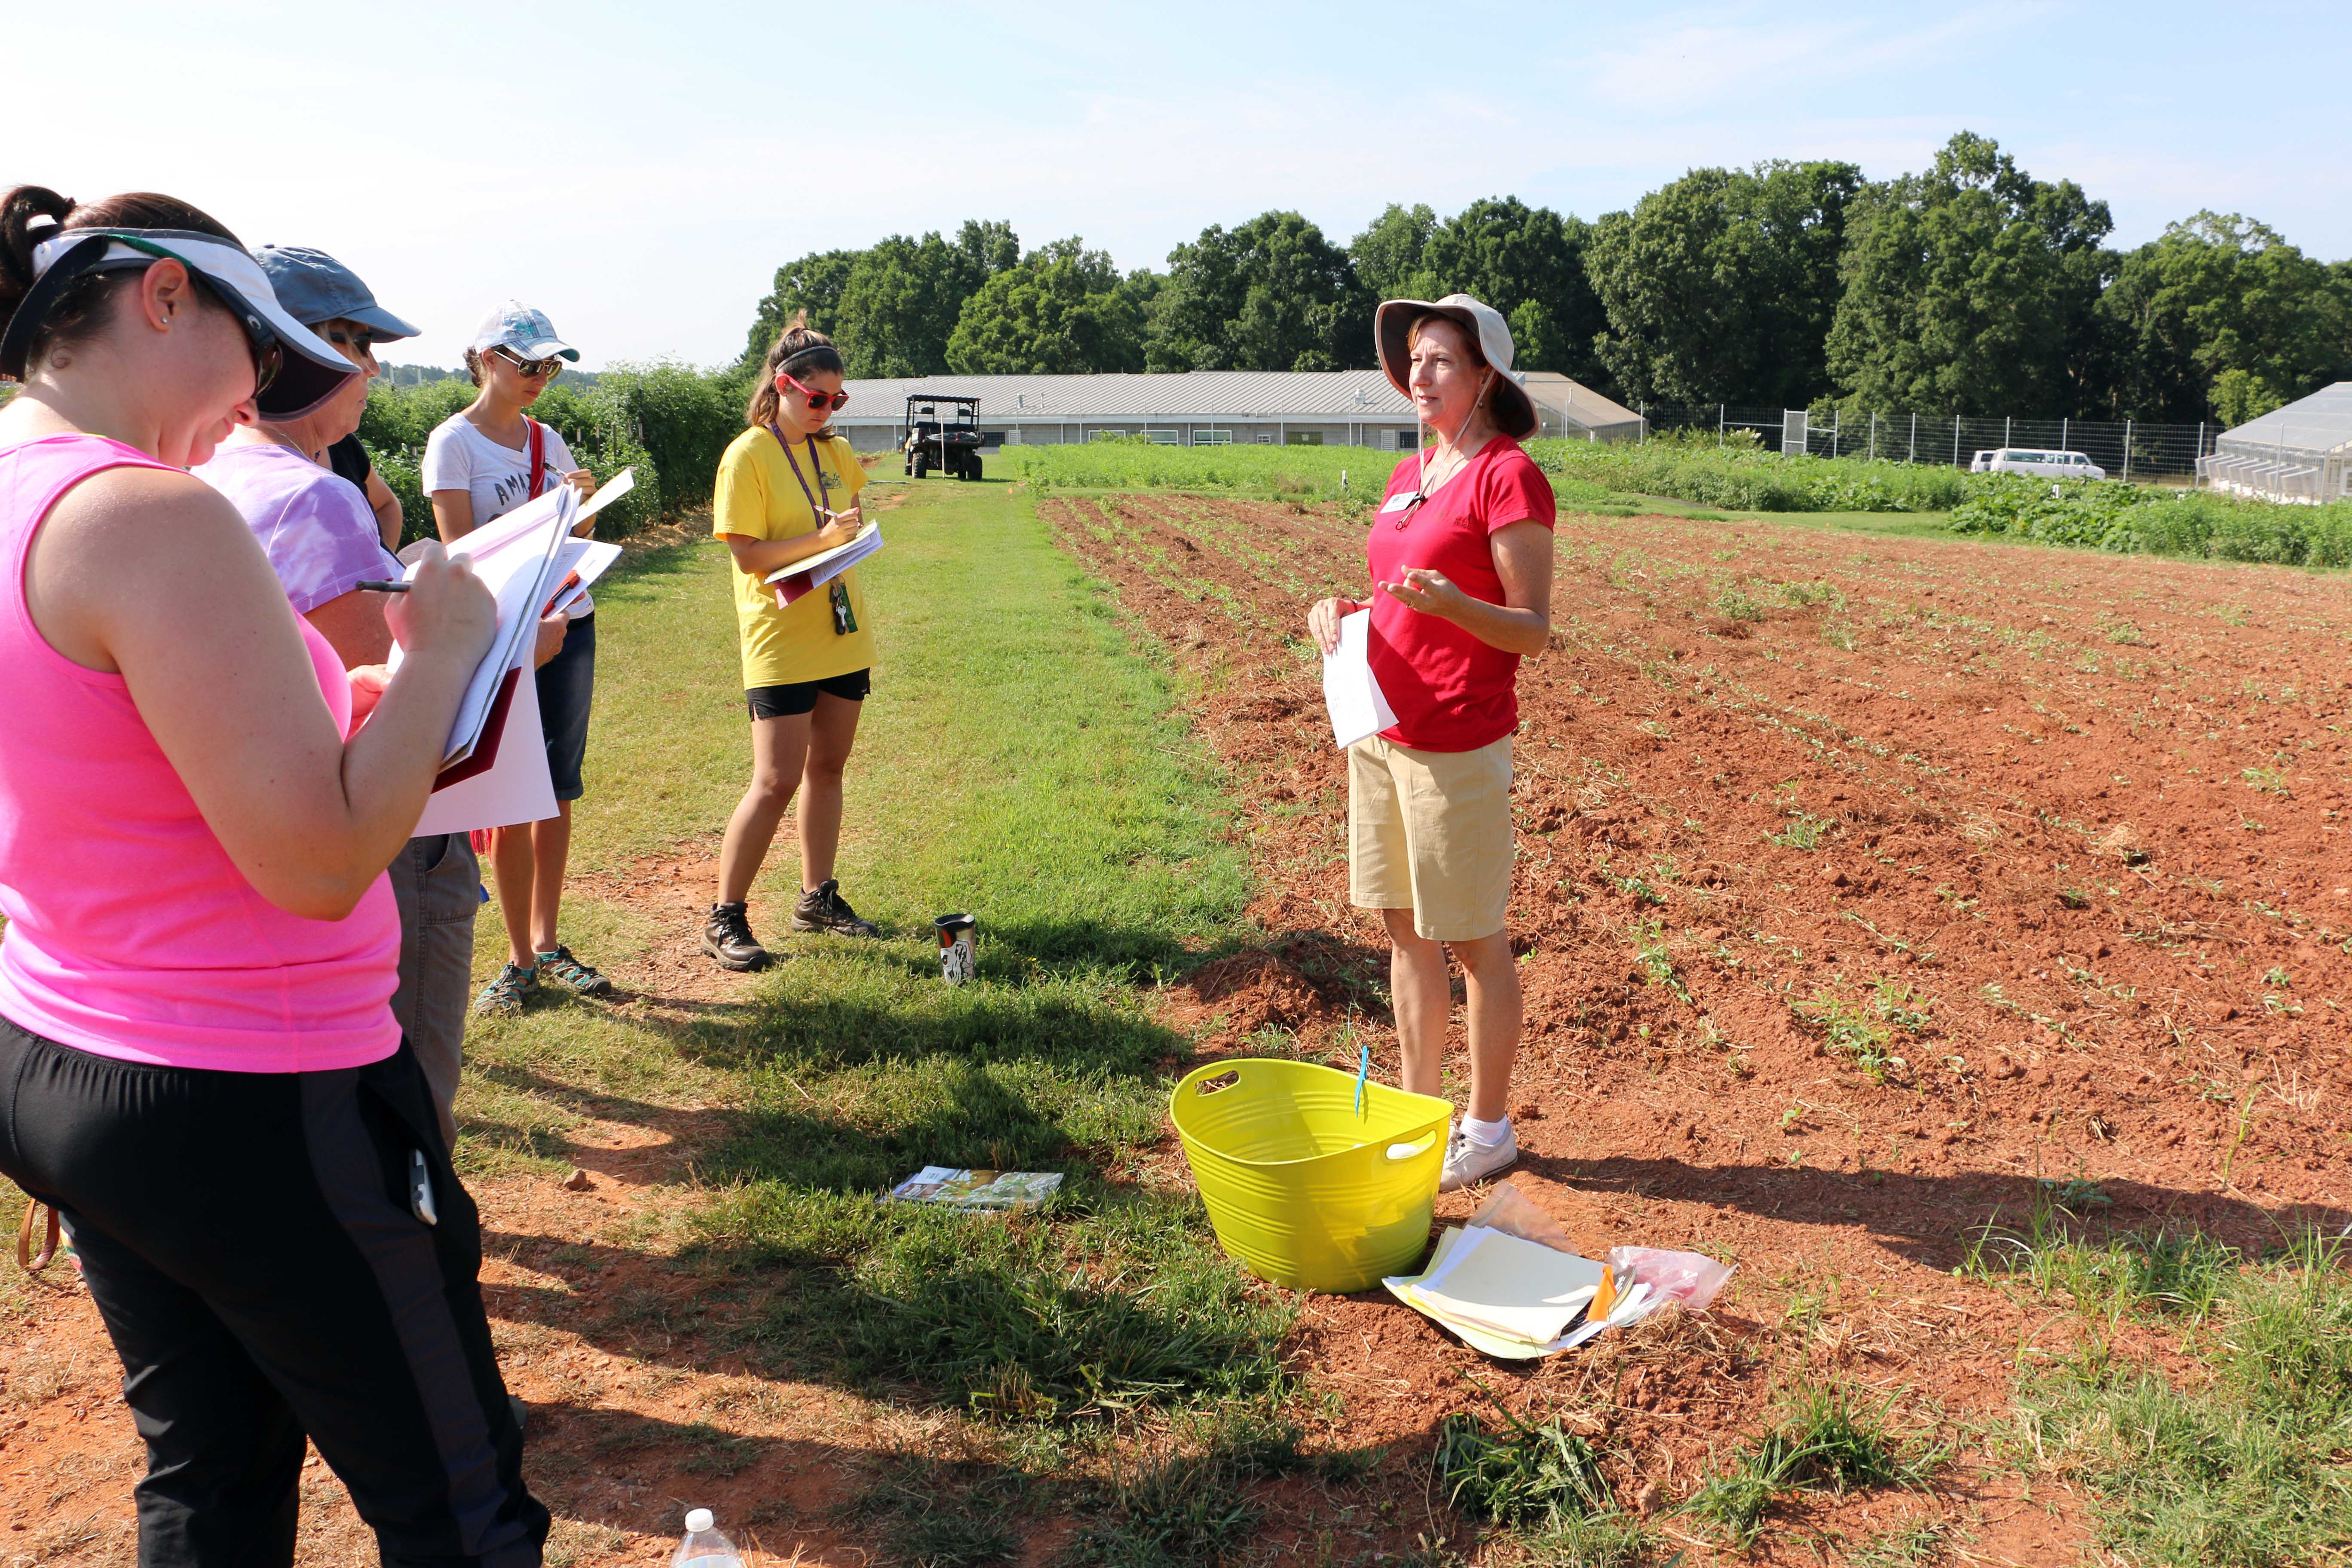 Becky Griffin, UGA Extension community and school garden coordinator, speaks to a group of teachers at a school garden curriculum training at UGArden in Athens, Georgia.